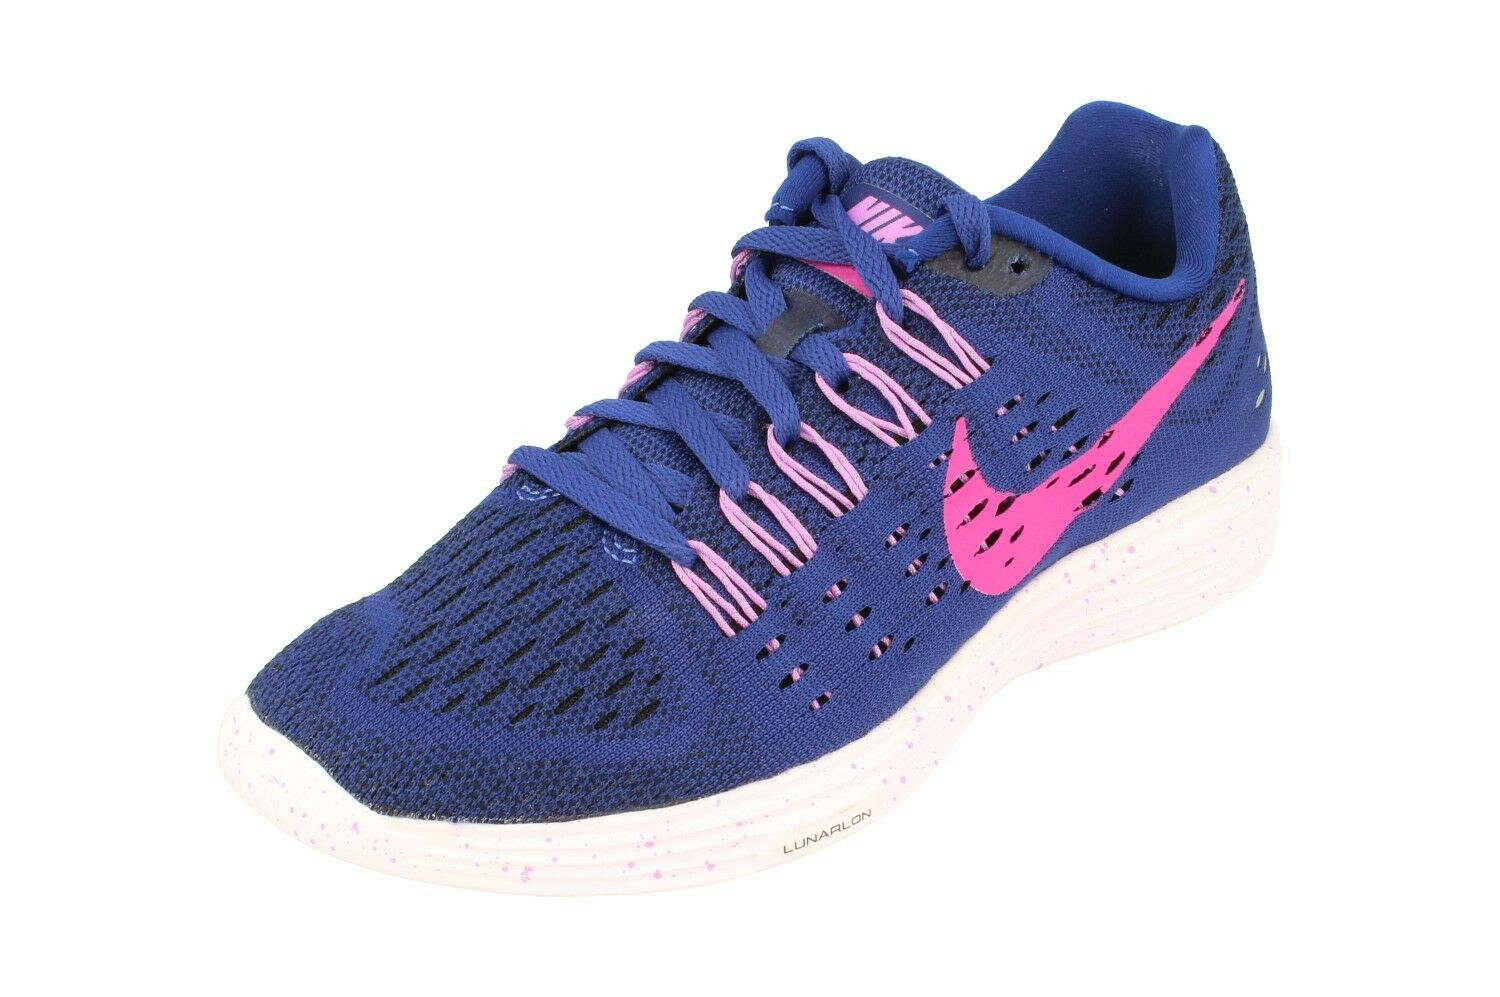 8f81d88959 Nike Running Trainers 705462 Sneakers shoes 405 Lunartempo Womens  ntlalw1167-Athletic Shoes